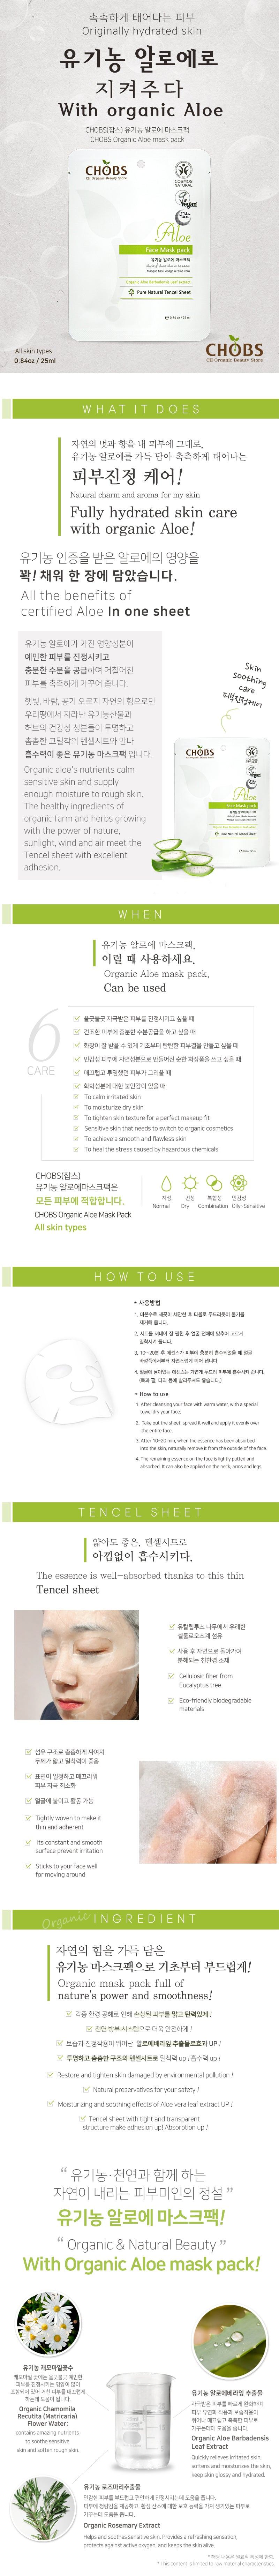 CHOBS Aloe Mask Pack description